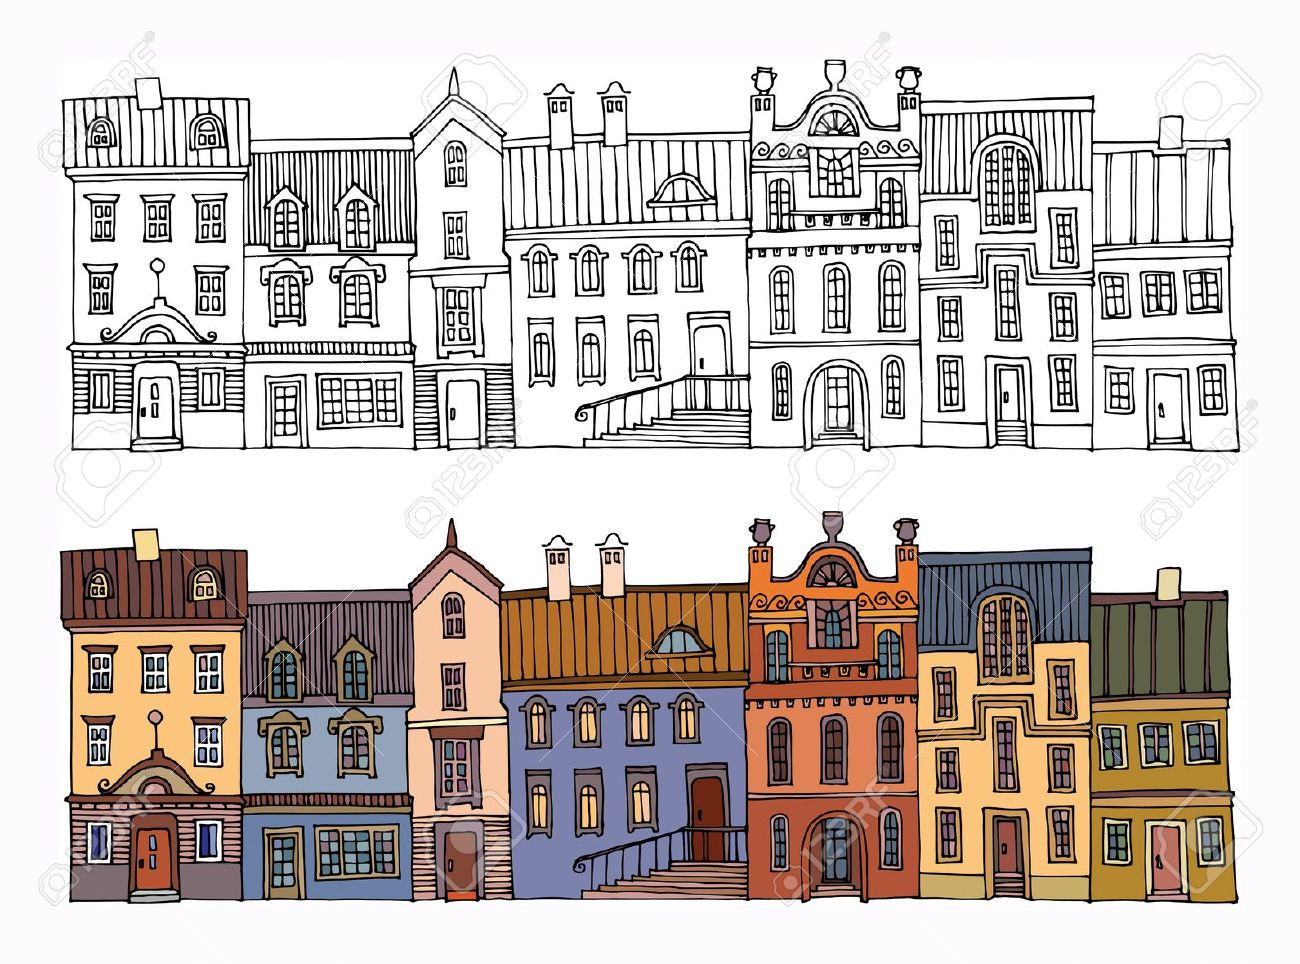 Terrace clipart housing community Drawing And Image Cliparts Houses